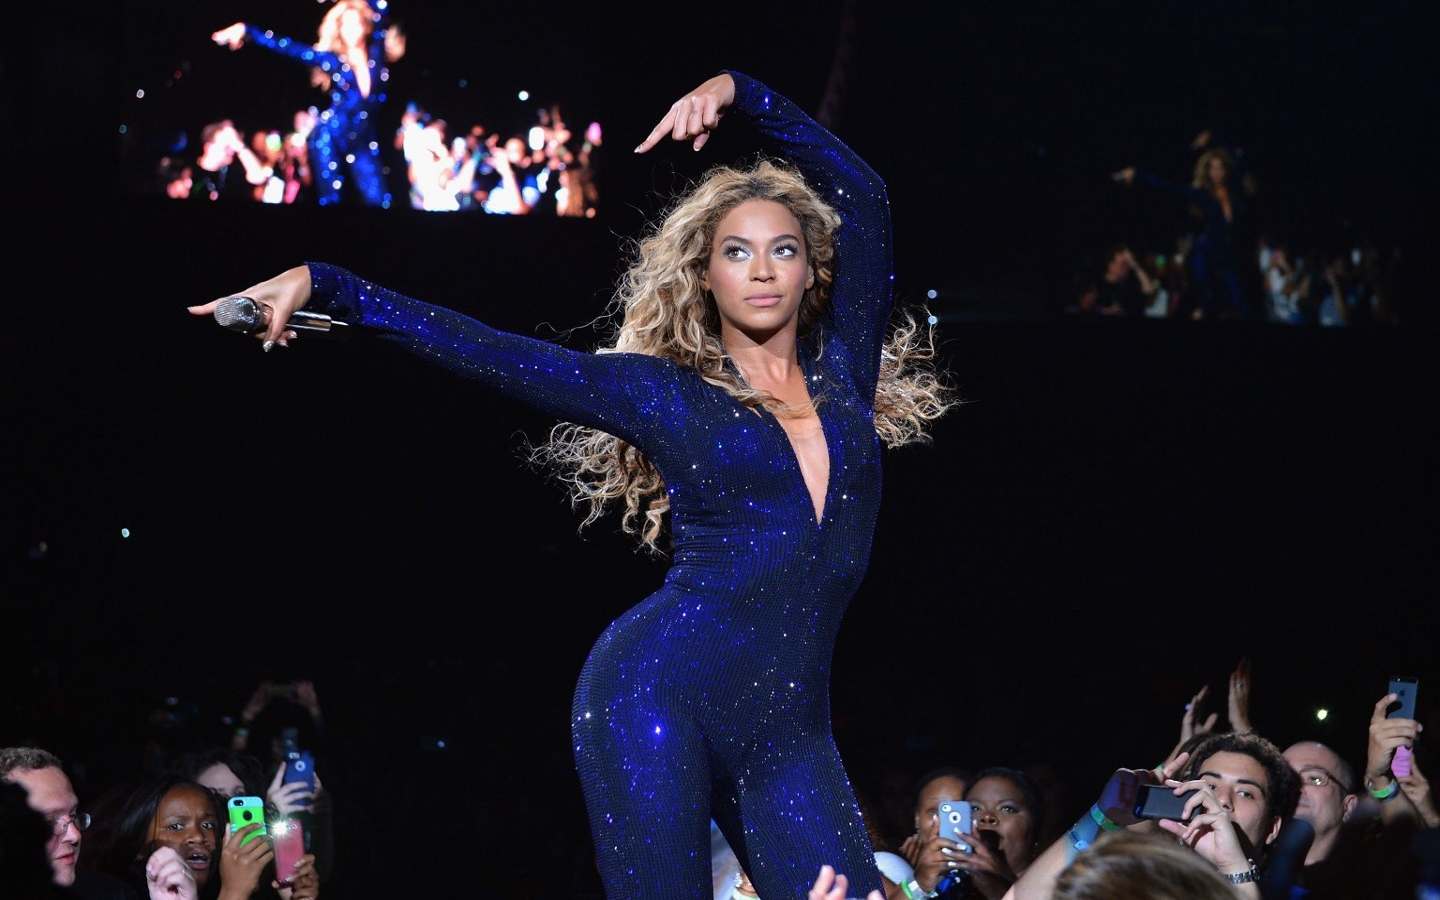 Beyonce images beyonce performing hd wallpaper and for 1234 get on the dance floor full hd video download